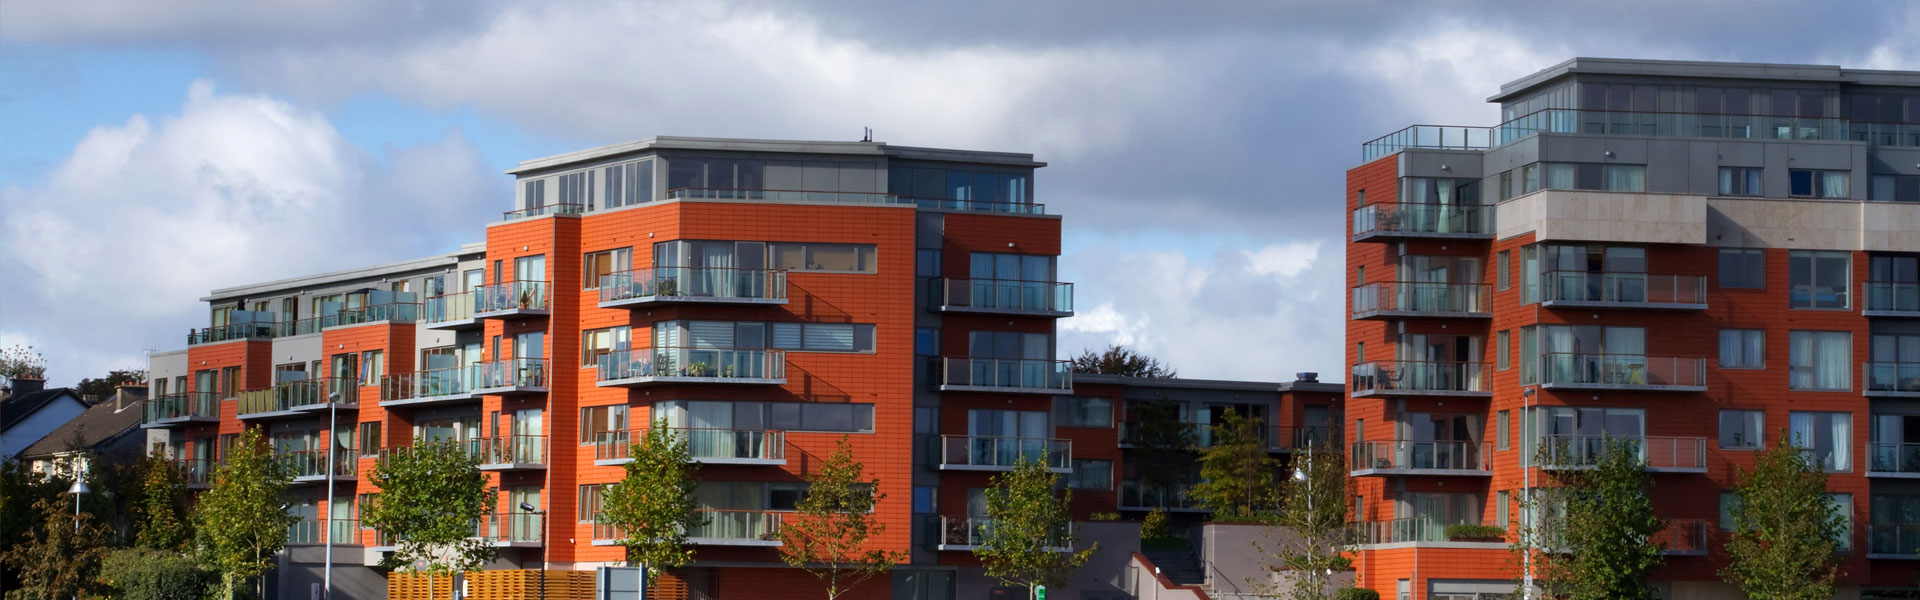 professional Commercial property management in Kilmacow